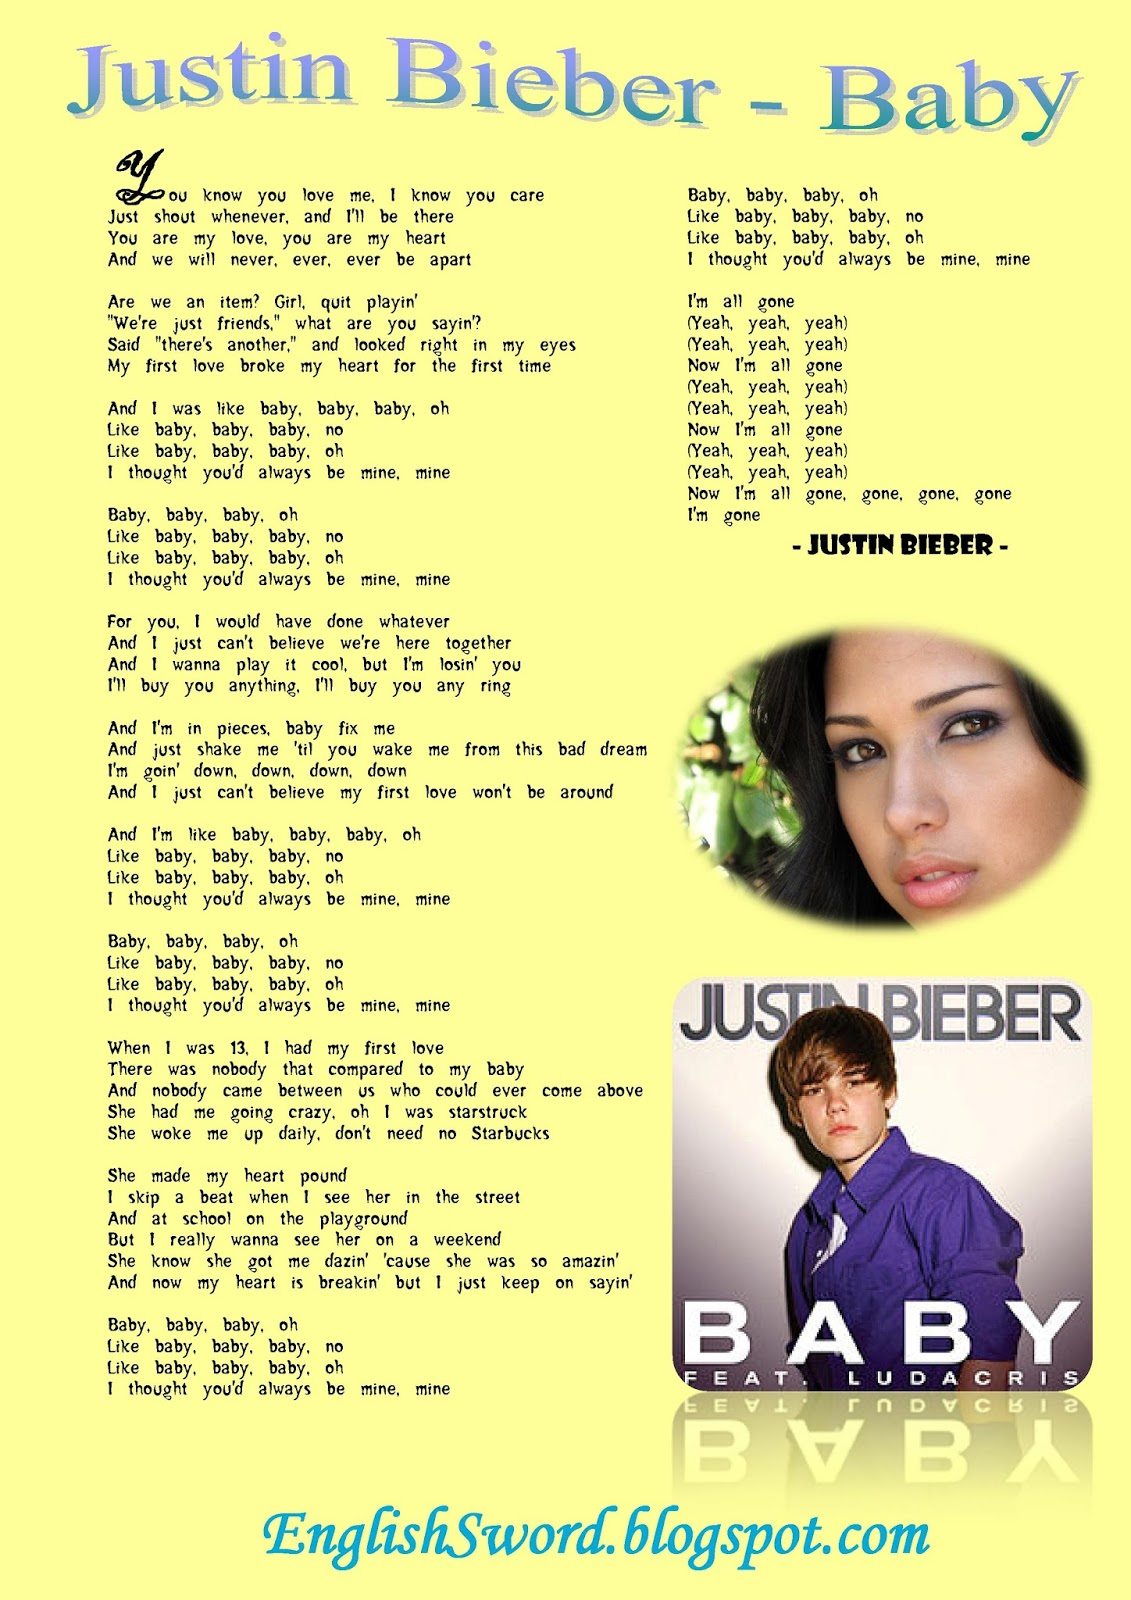 justin bieber love me lyrics metrolyrics autos post